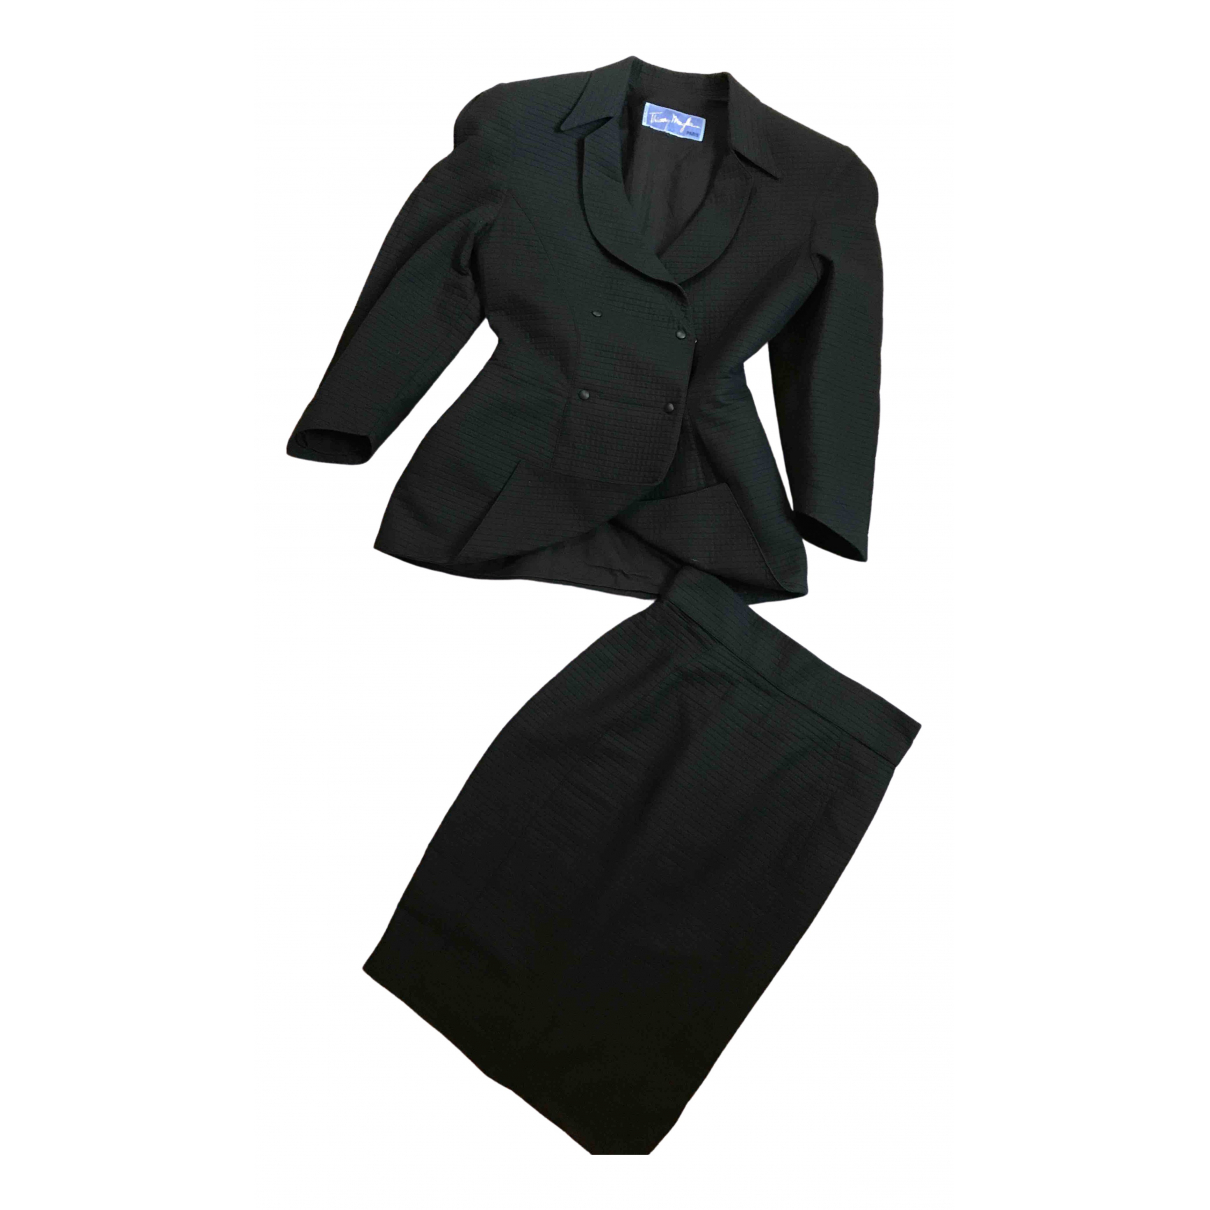 Thierry Mugler \N Black Cotton jacket for Women 38 IT